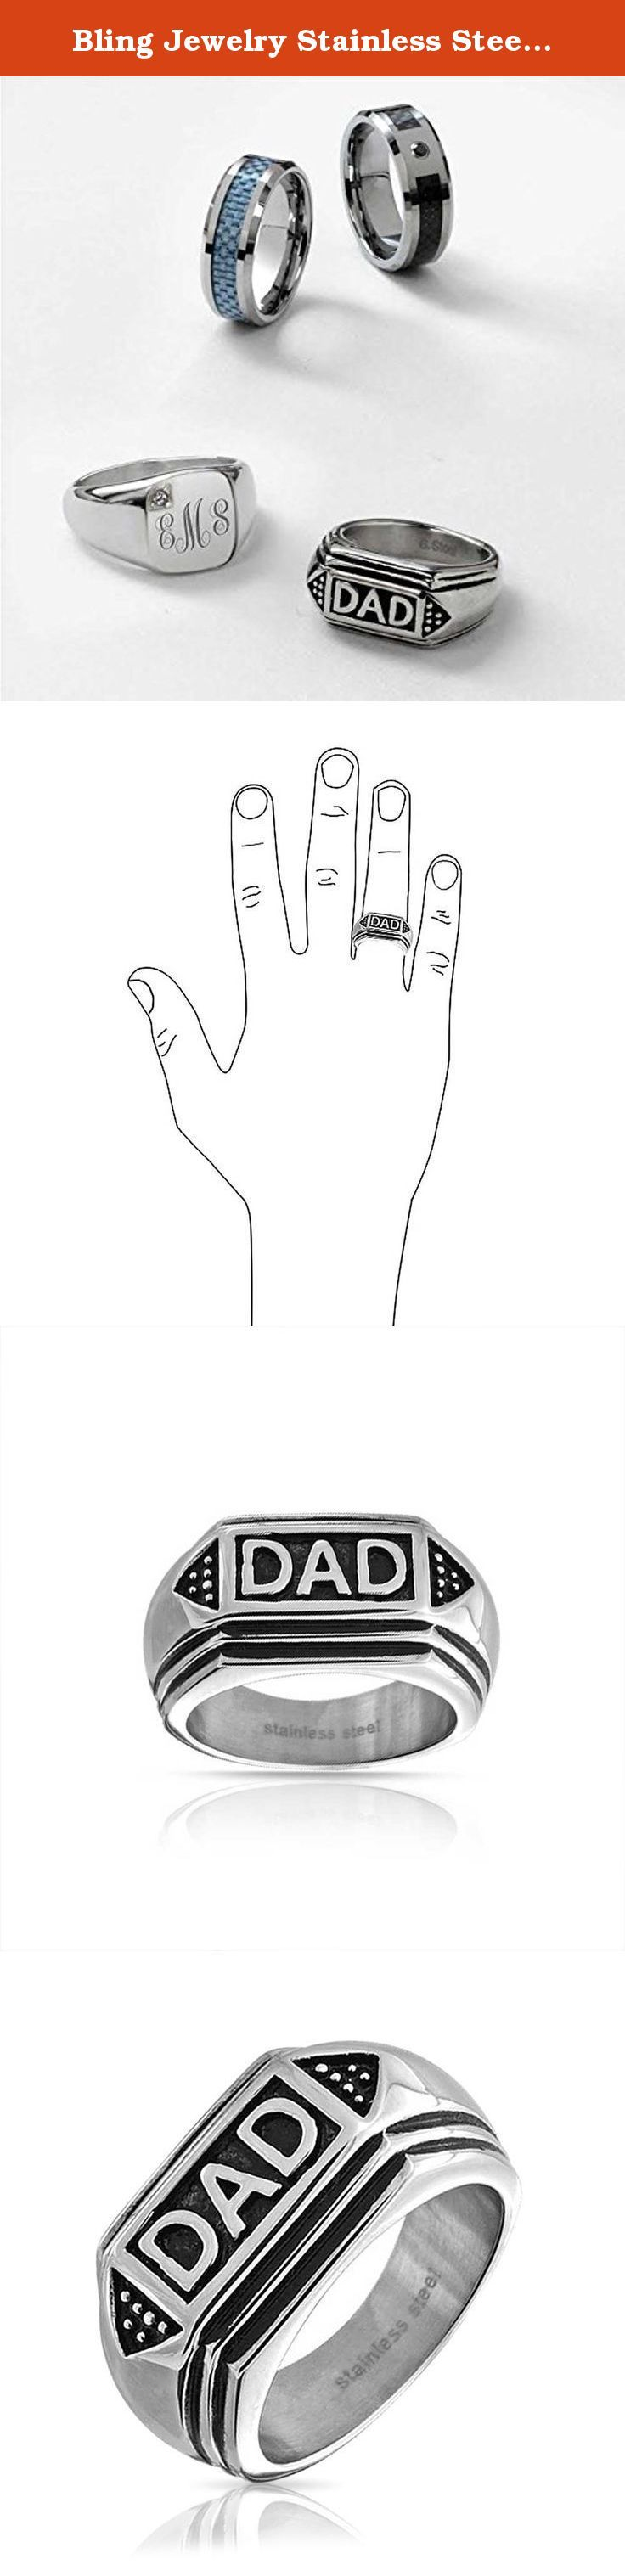 Bling Jewelry Stainless Steel Black Enamel Geometric Mens Dad Ring. Your dad will always know just how much you love him when he wears this thoughtful gift of Fathers Day jewelry every day. Geometric edges and two triangular shapes on either side of the word DAD, give our stainless steel geometric ring a modern look. The black enamel gives the two tone piece great contrast. This is destined to be one of his favorite Fathers Day gifts from the minute he opens the package and slips it on…